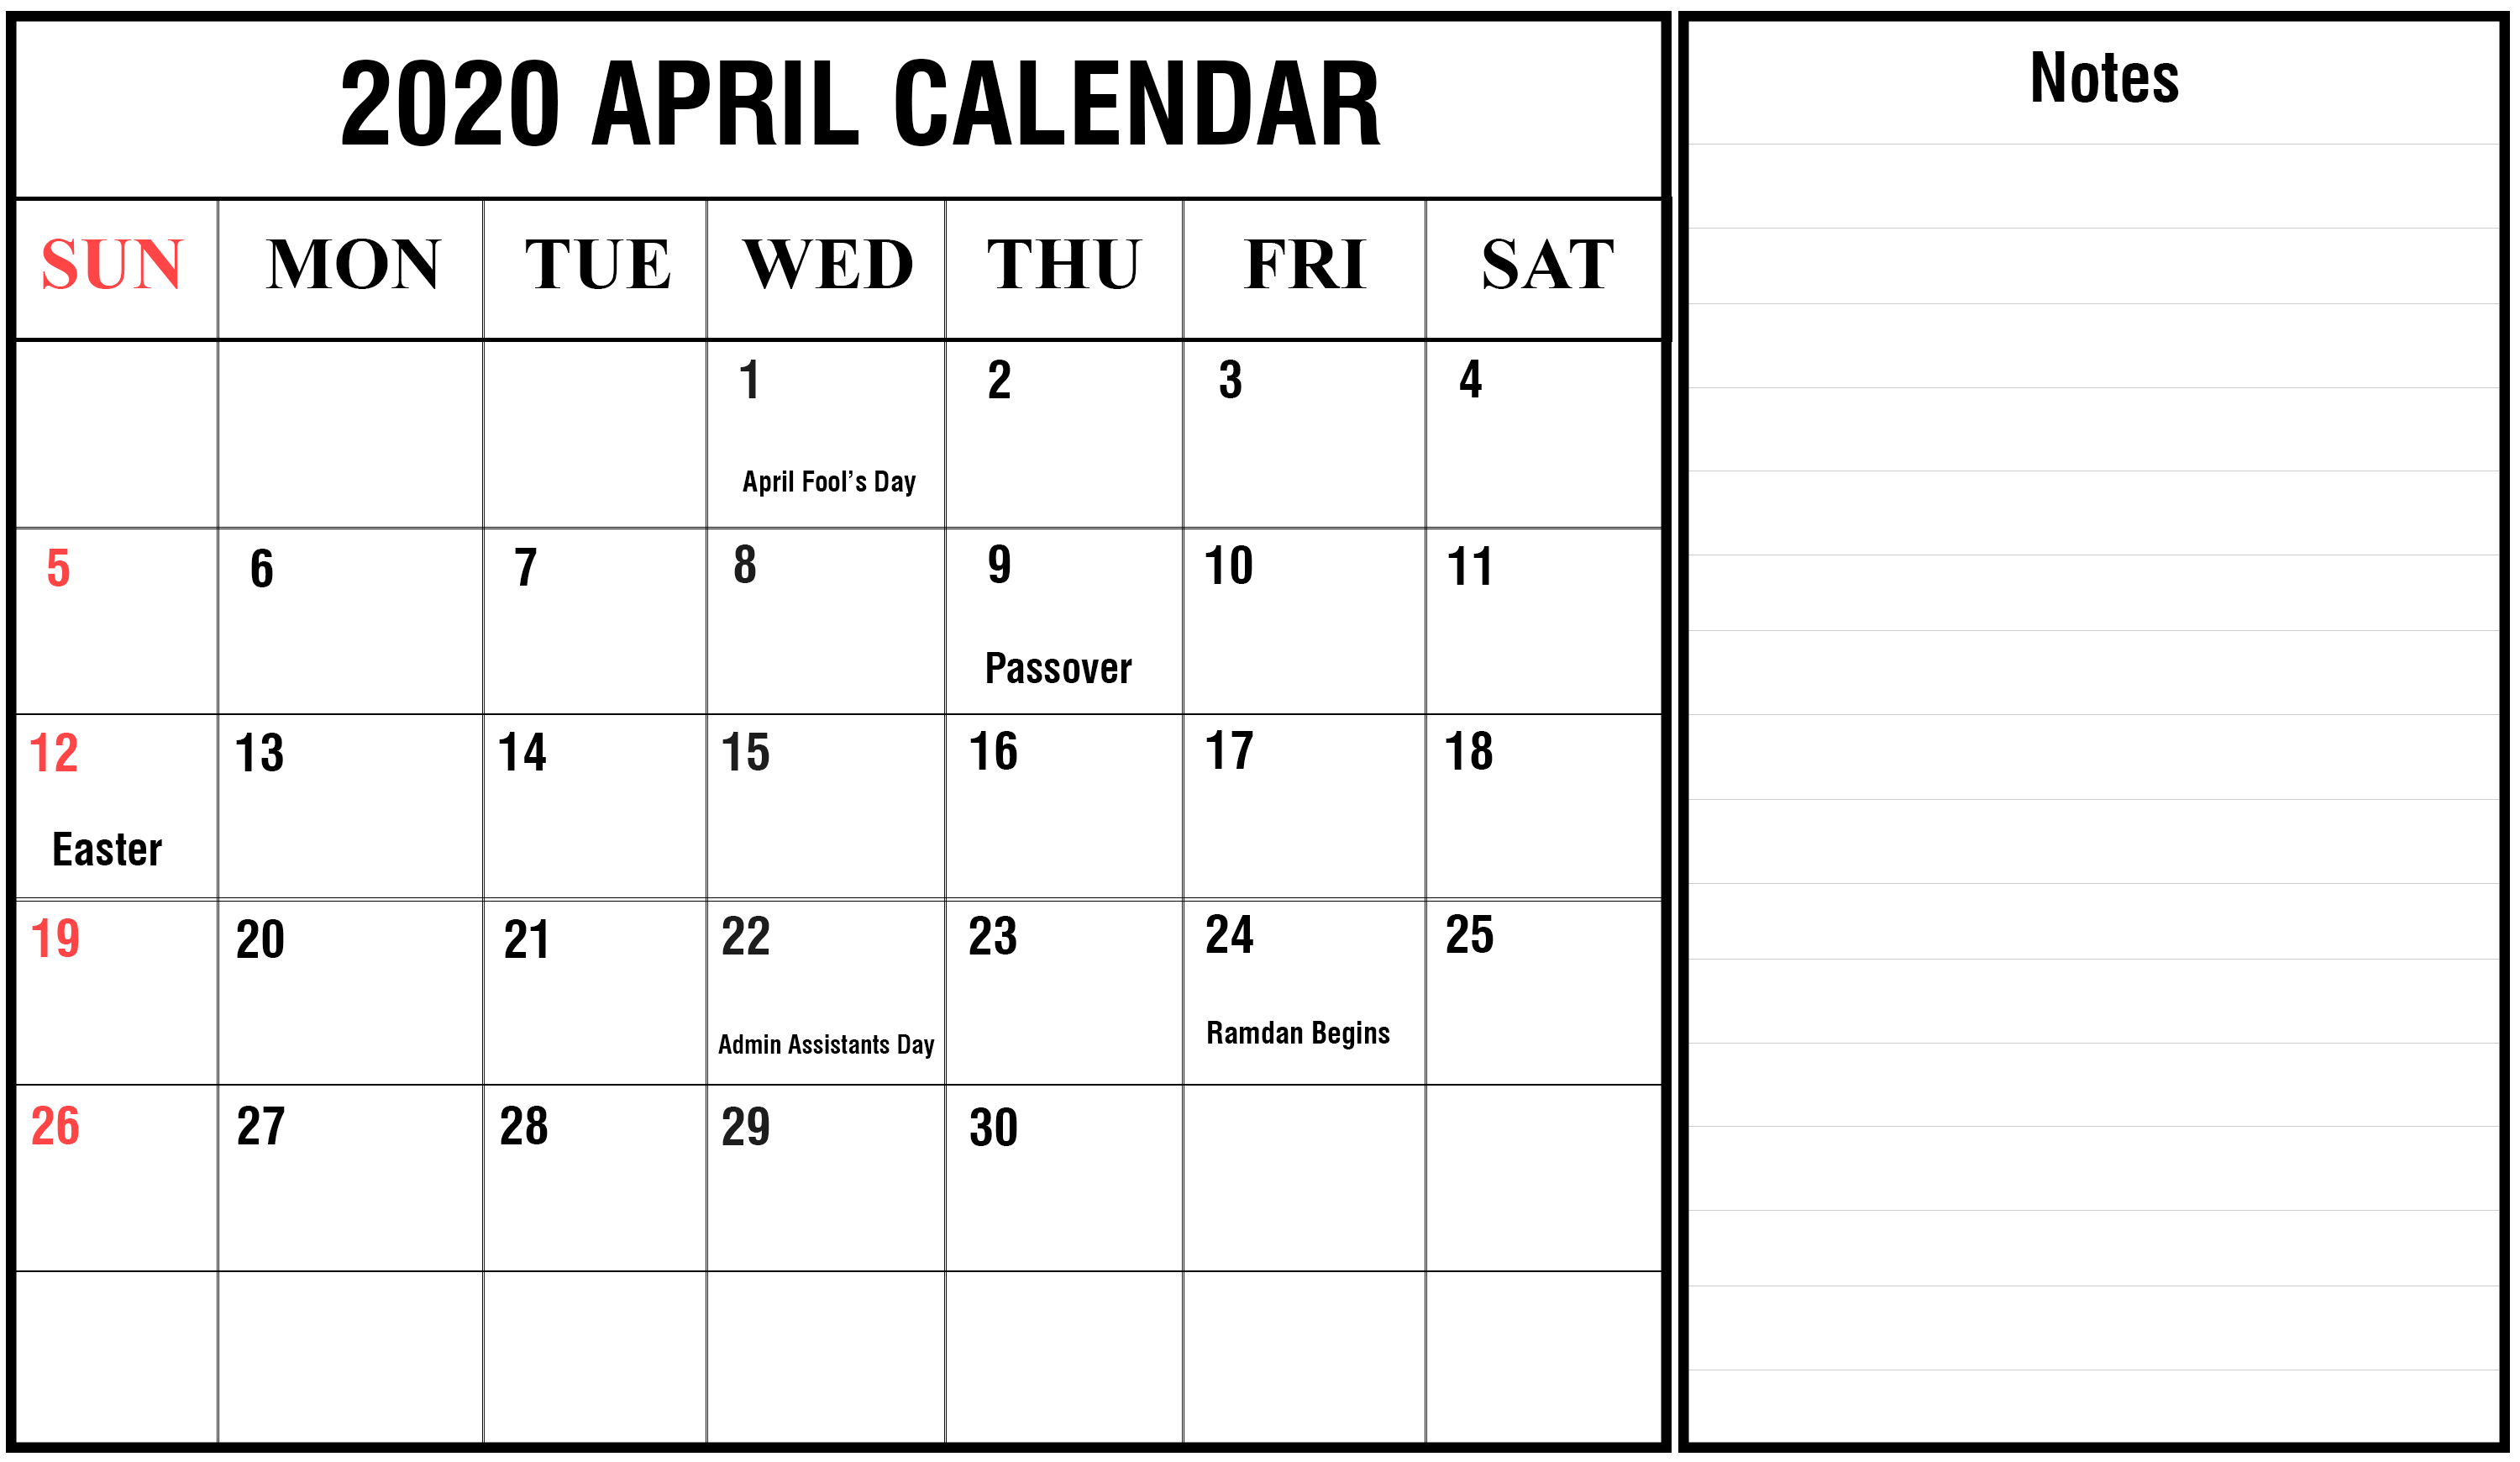 April 2020 Calendar With Notes